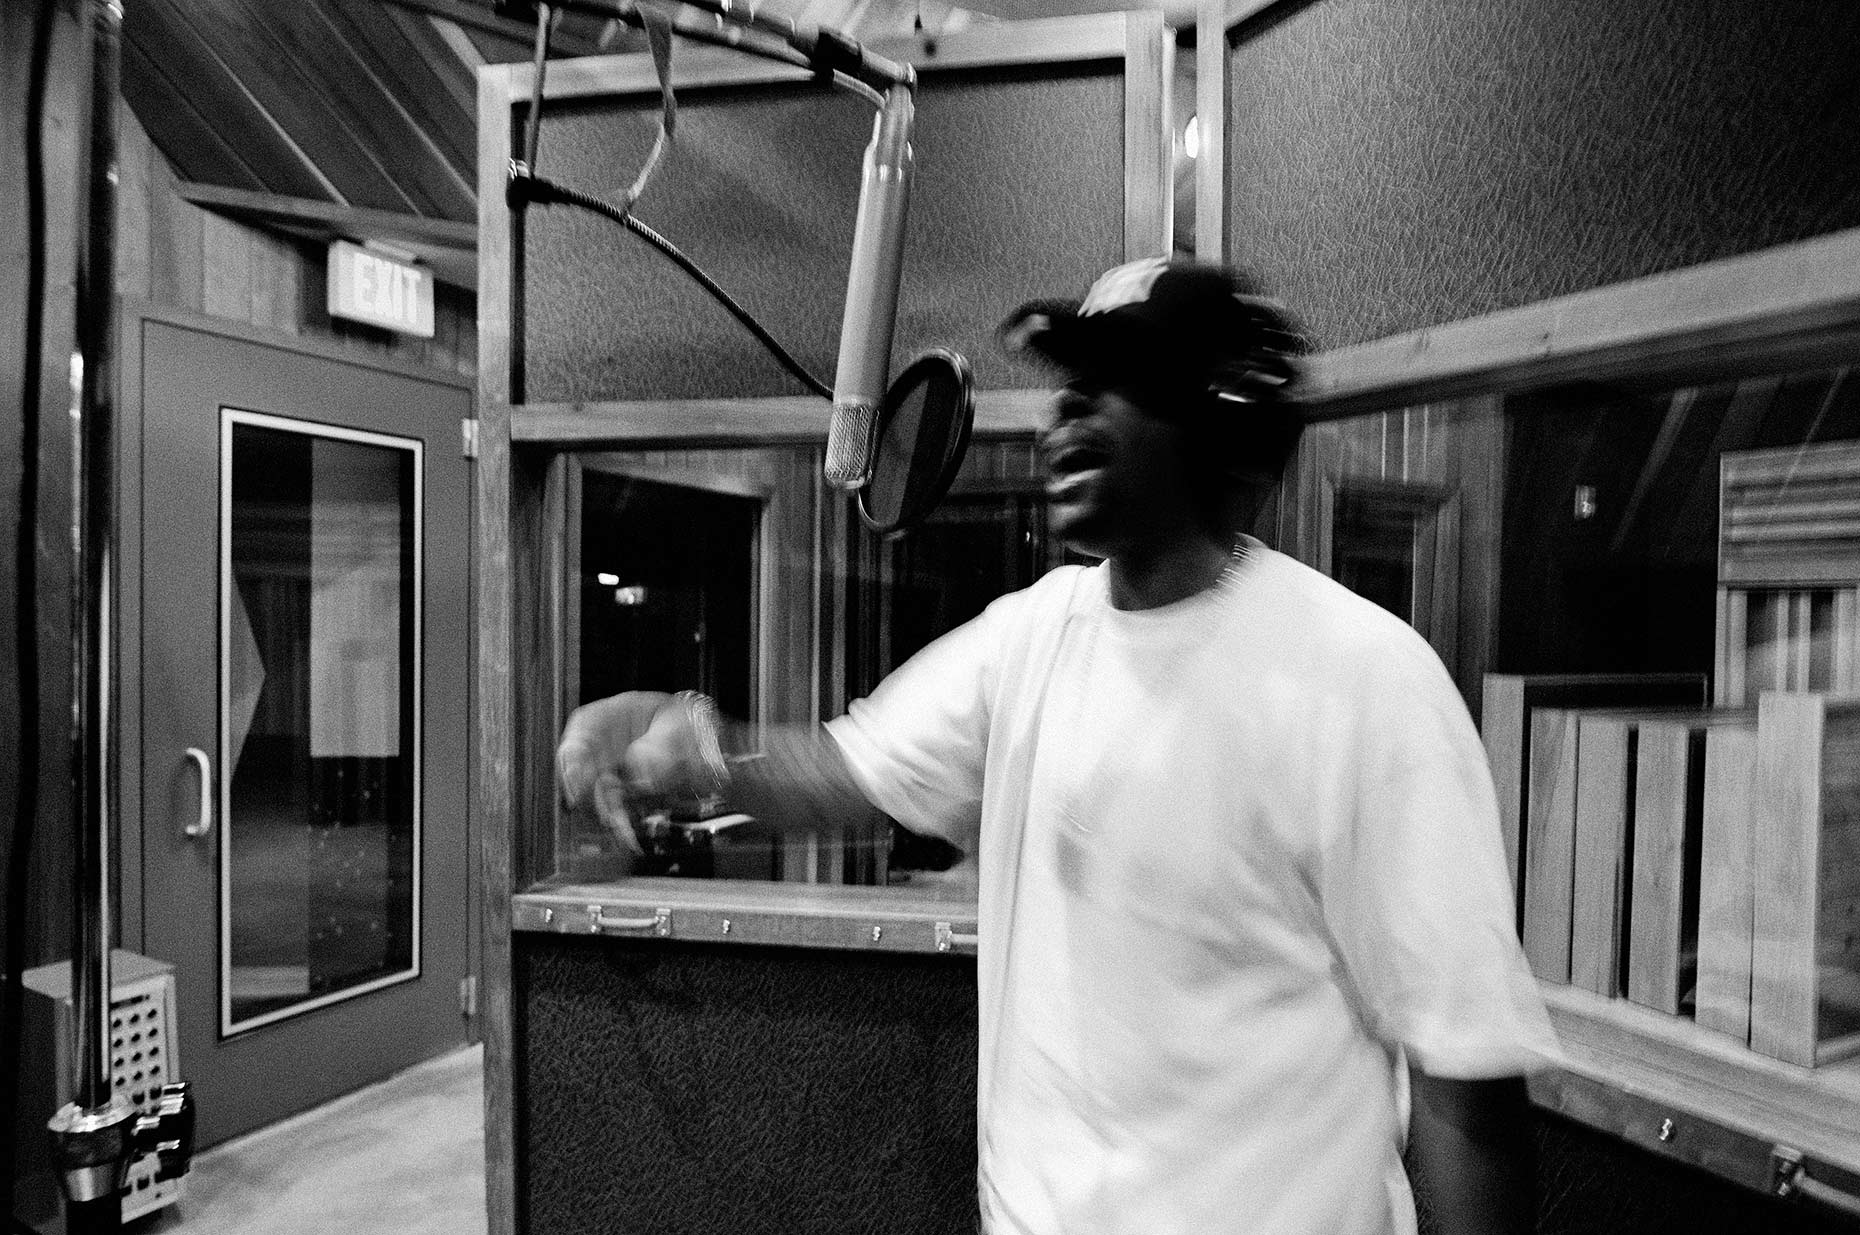 BLEEK_recording090709_016web.jpg